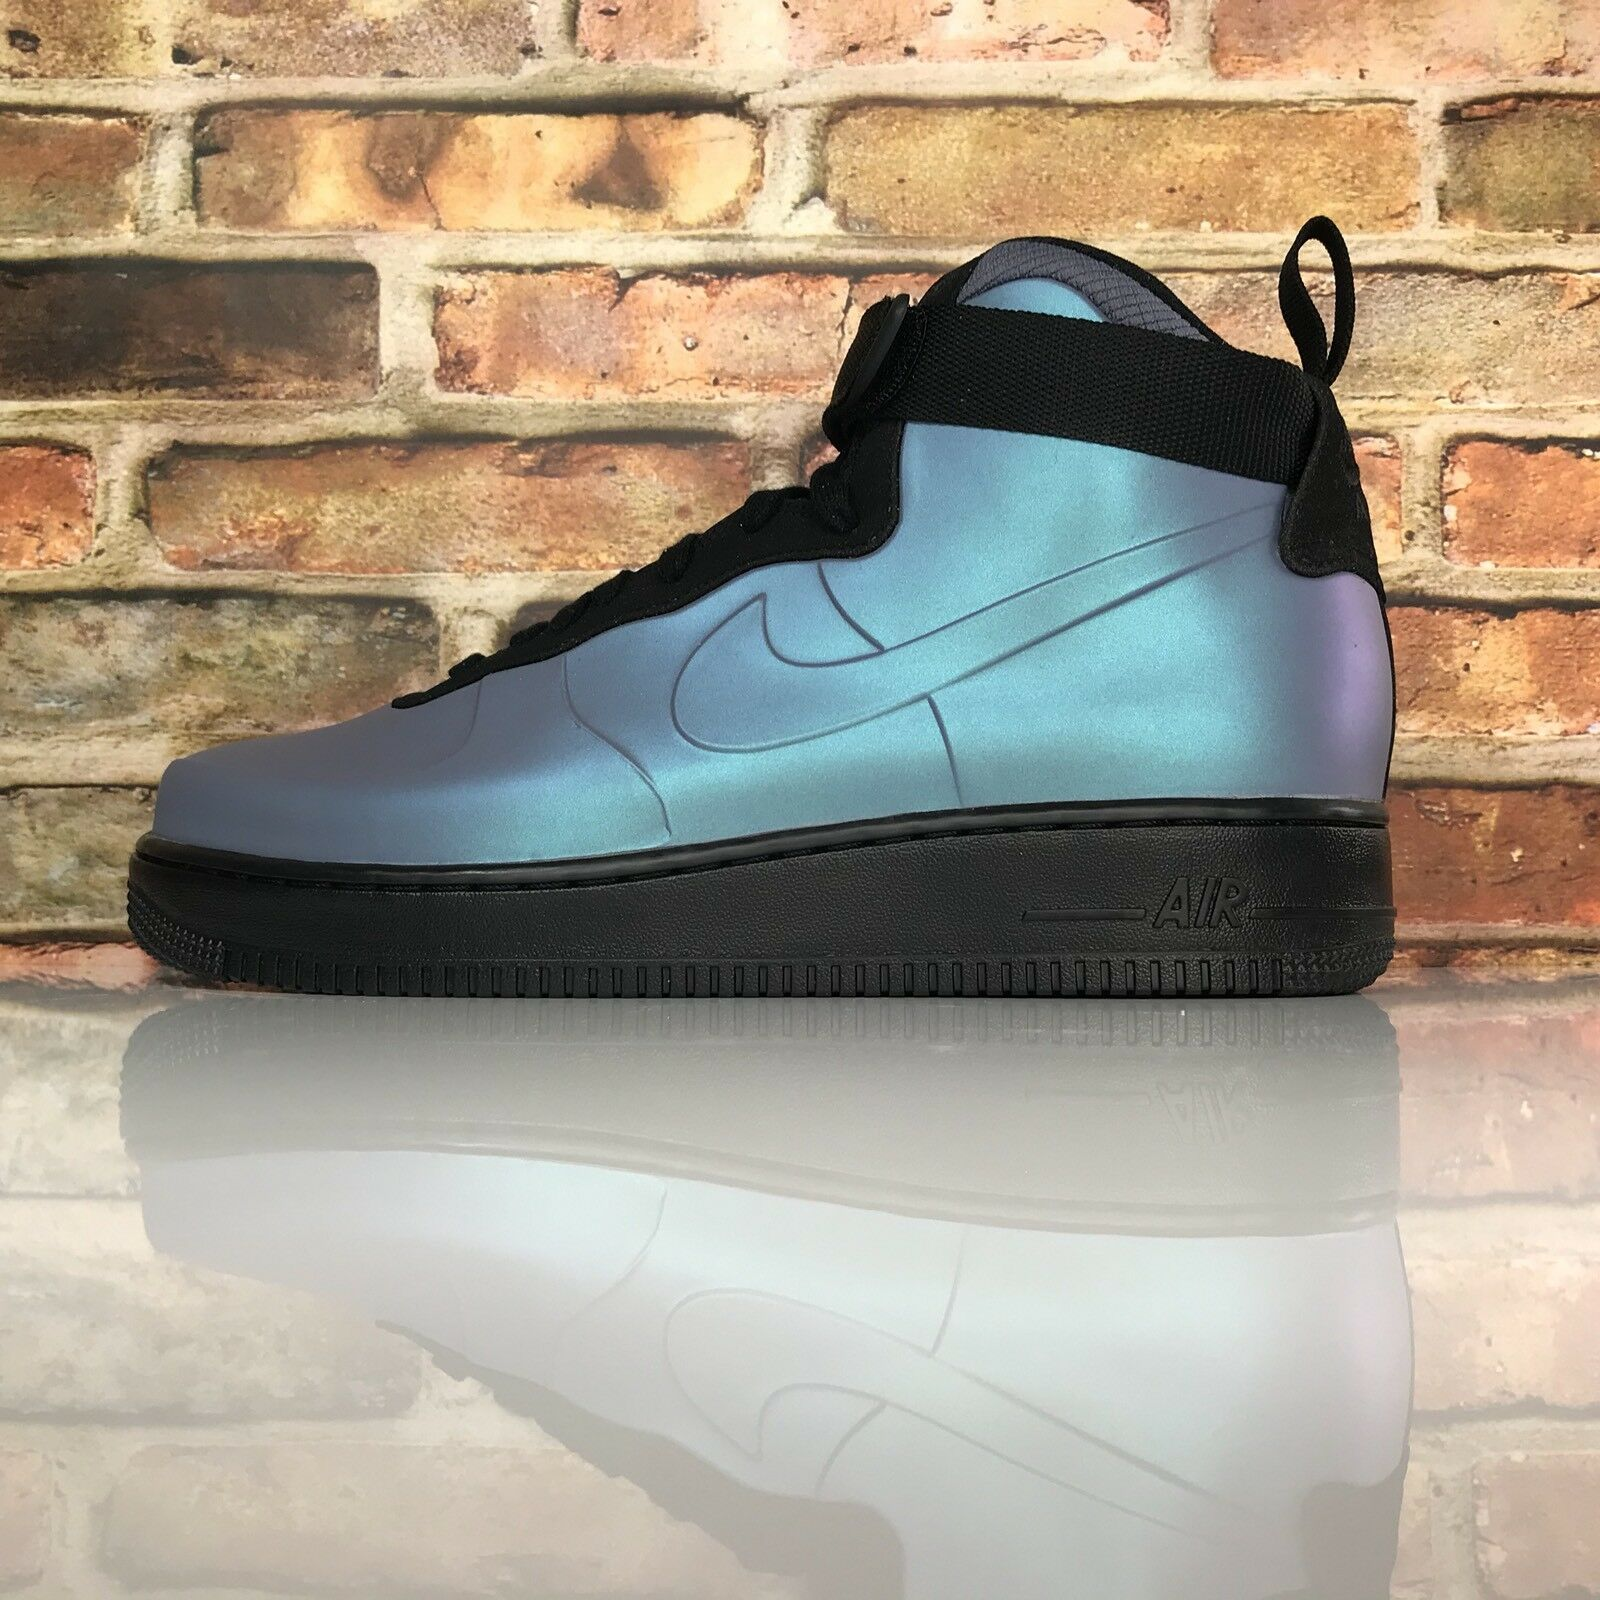 Nike Air Force 1 Foamposite Cup Mens 11 Light Carbon Black Shoes Msrp Price reduction Special limited time